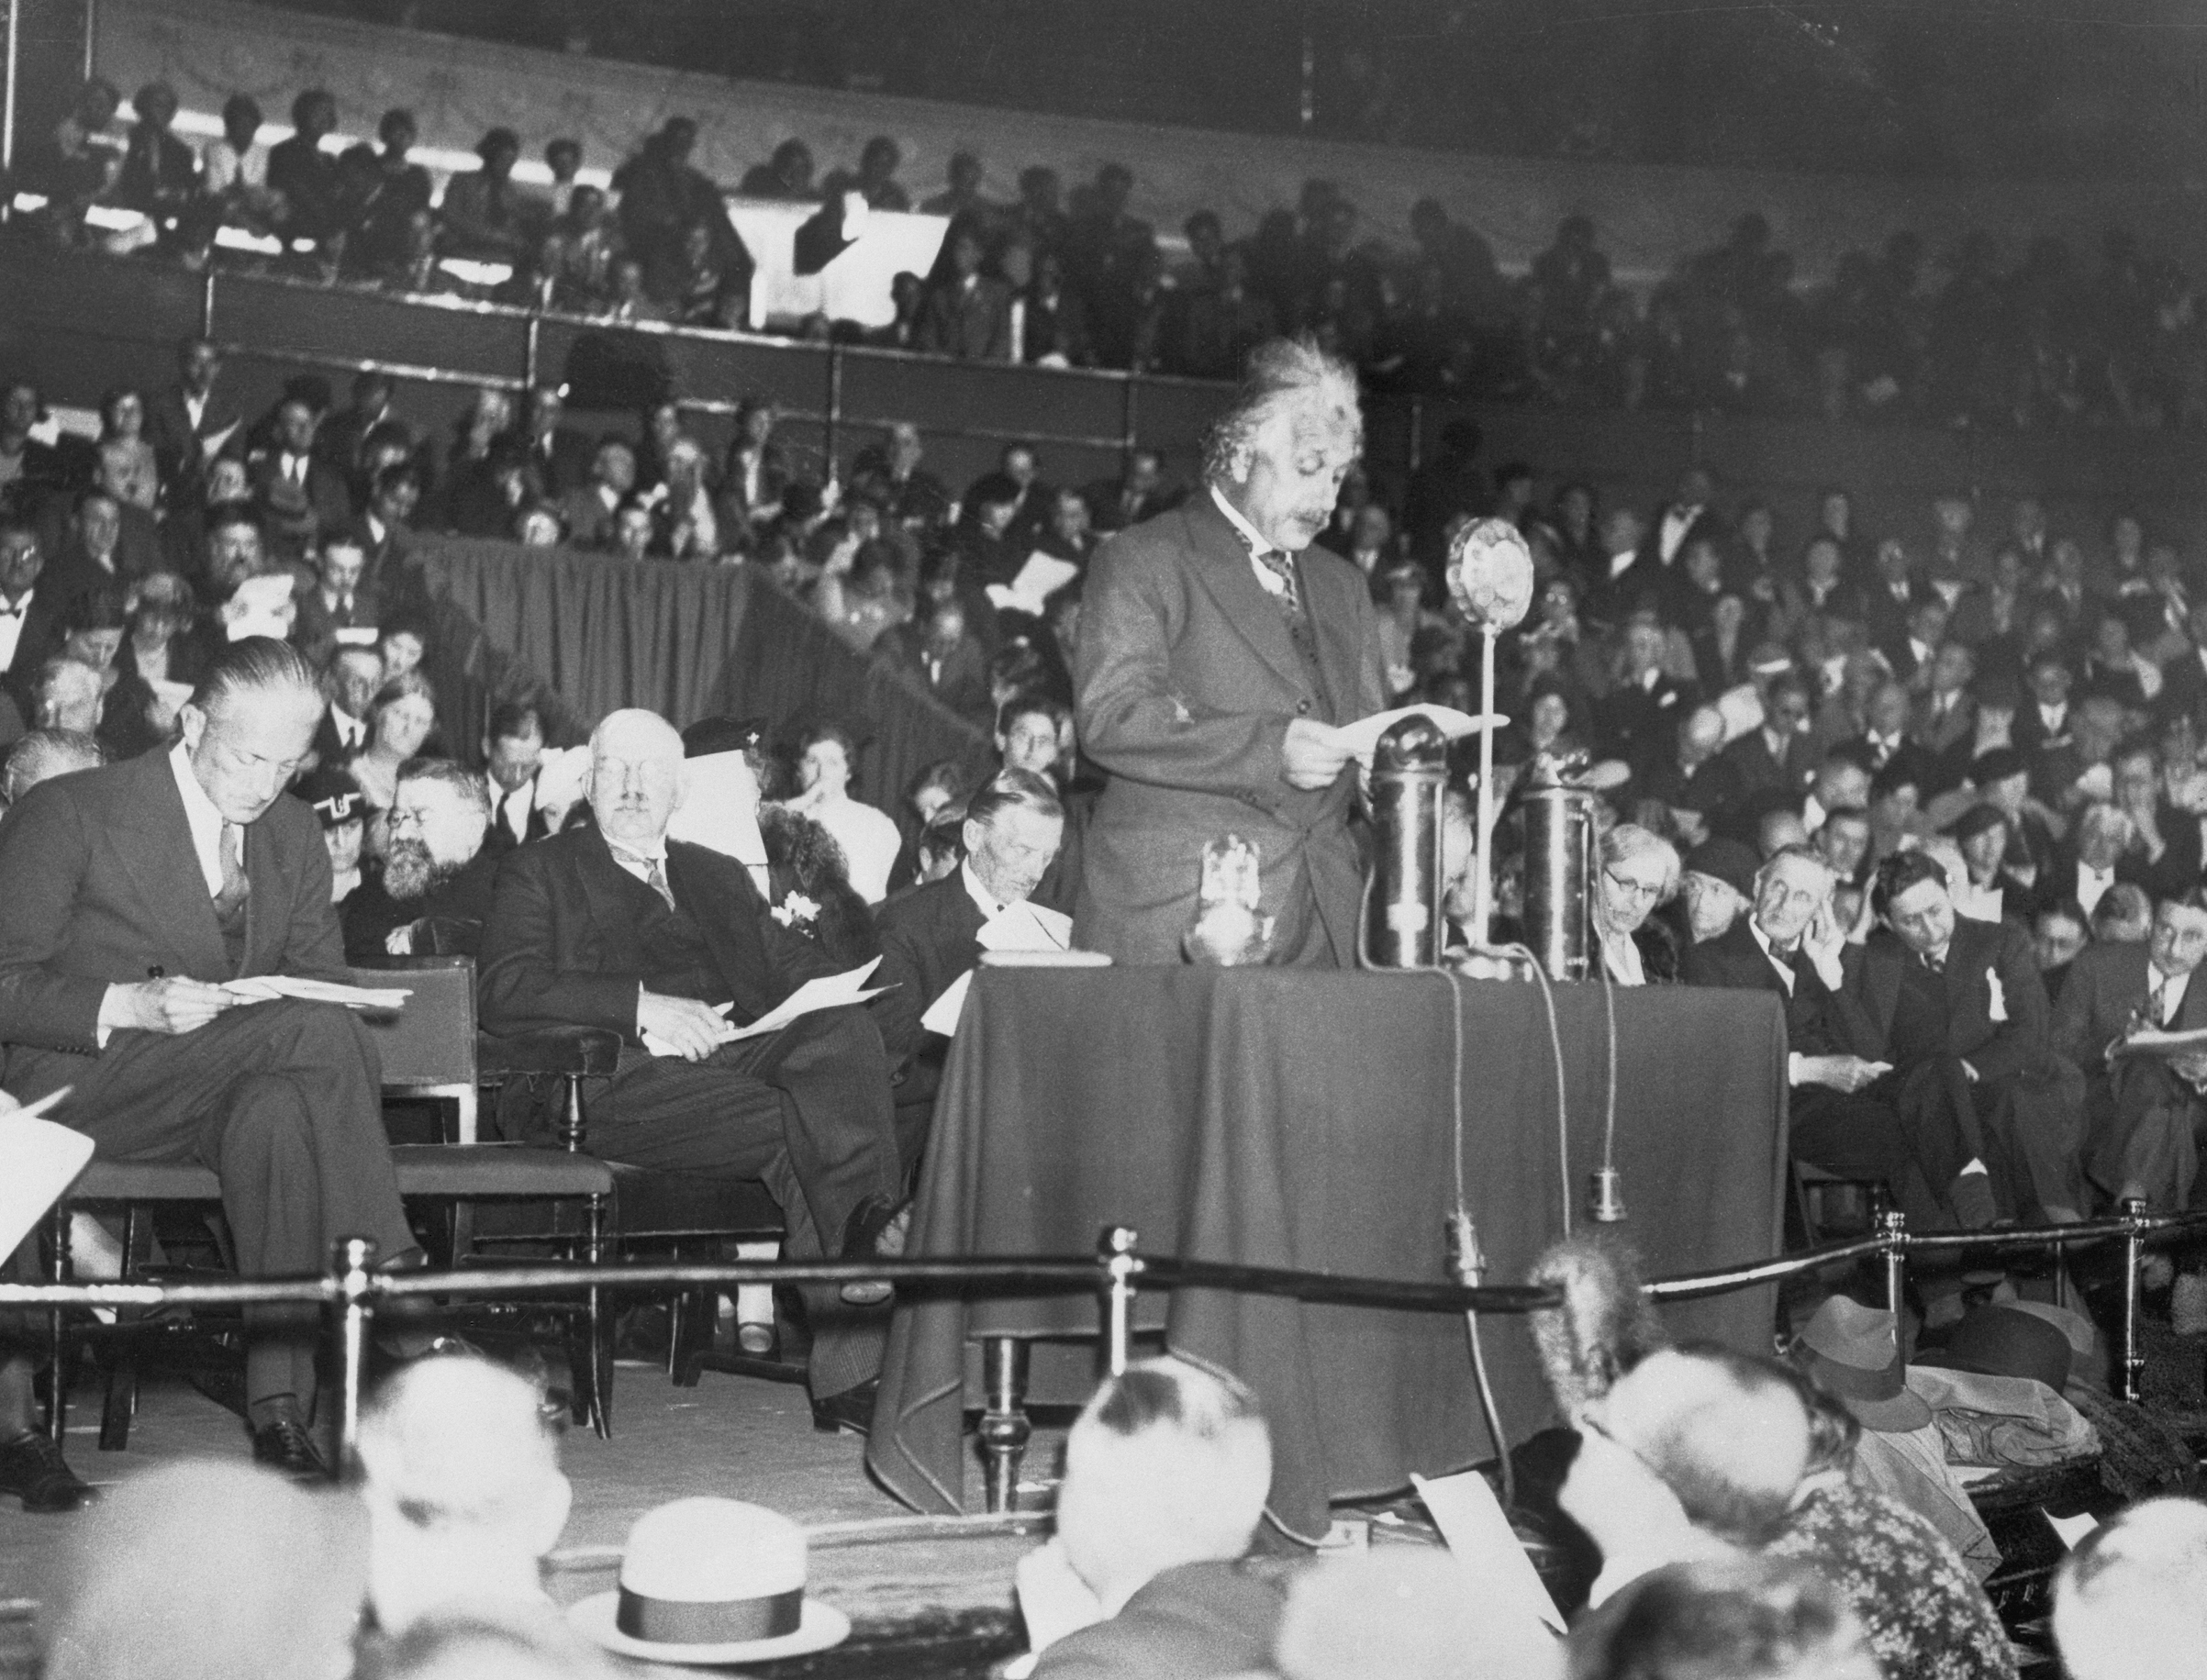 Professor Albert Einstein, who has taken up residence in England as a refugee from Nazi threats, was among the prominent speakers who addressed a great gathering at the Royal Albert Hall in London, recently, to aid the Jewish Refugee Fund. Commander Locker Lampson, M.P., Lord Rutherford and Sir Austen Chamberlain were among the principal speakers of the meeting. Photo shows Professor Einstein during the delivery of his speech. October 1933.